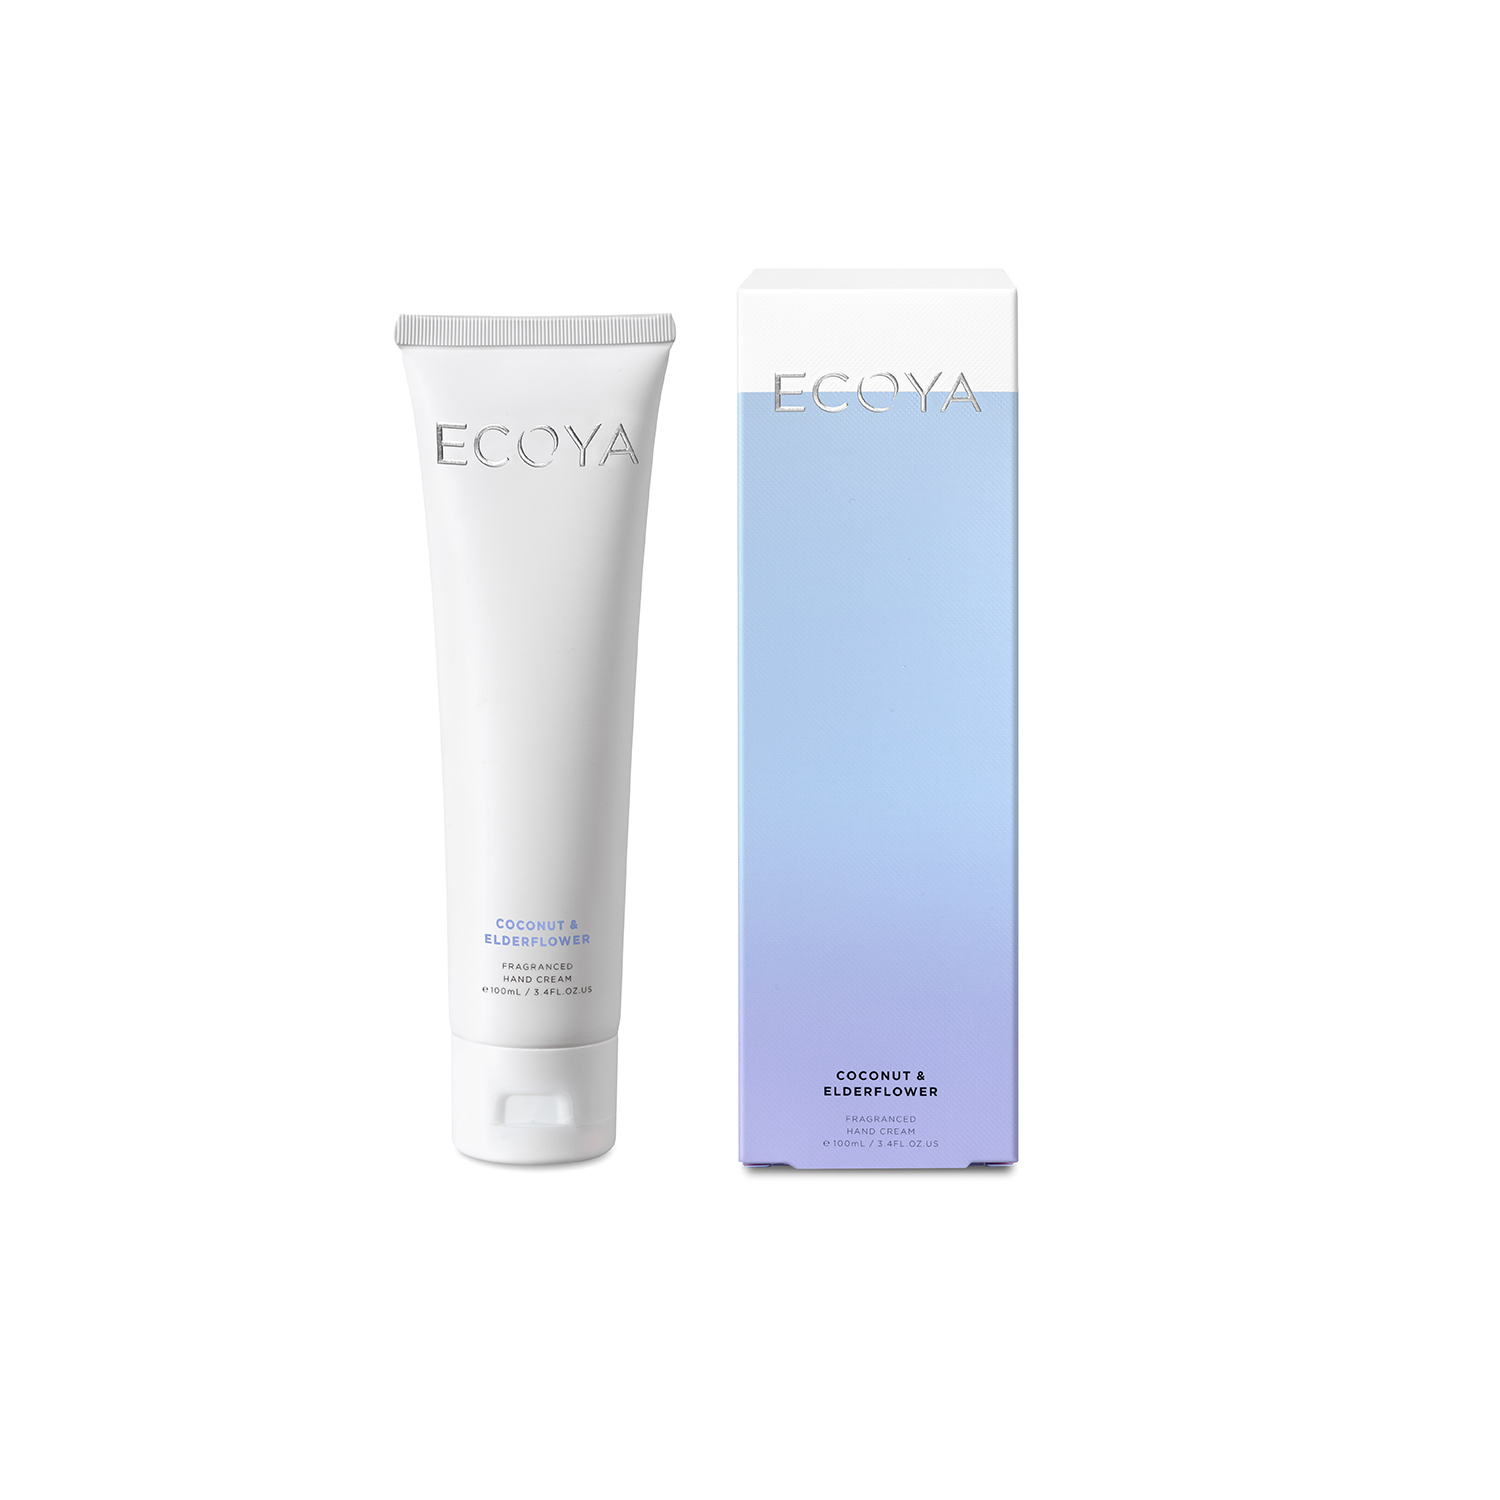 Ecoya Coconut and Elderflower Hand Cream 3.3oz (100ml)